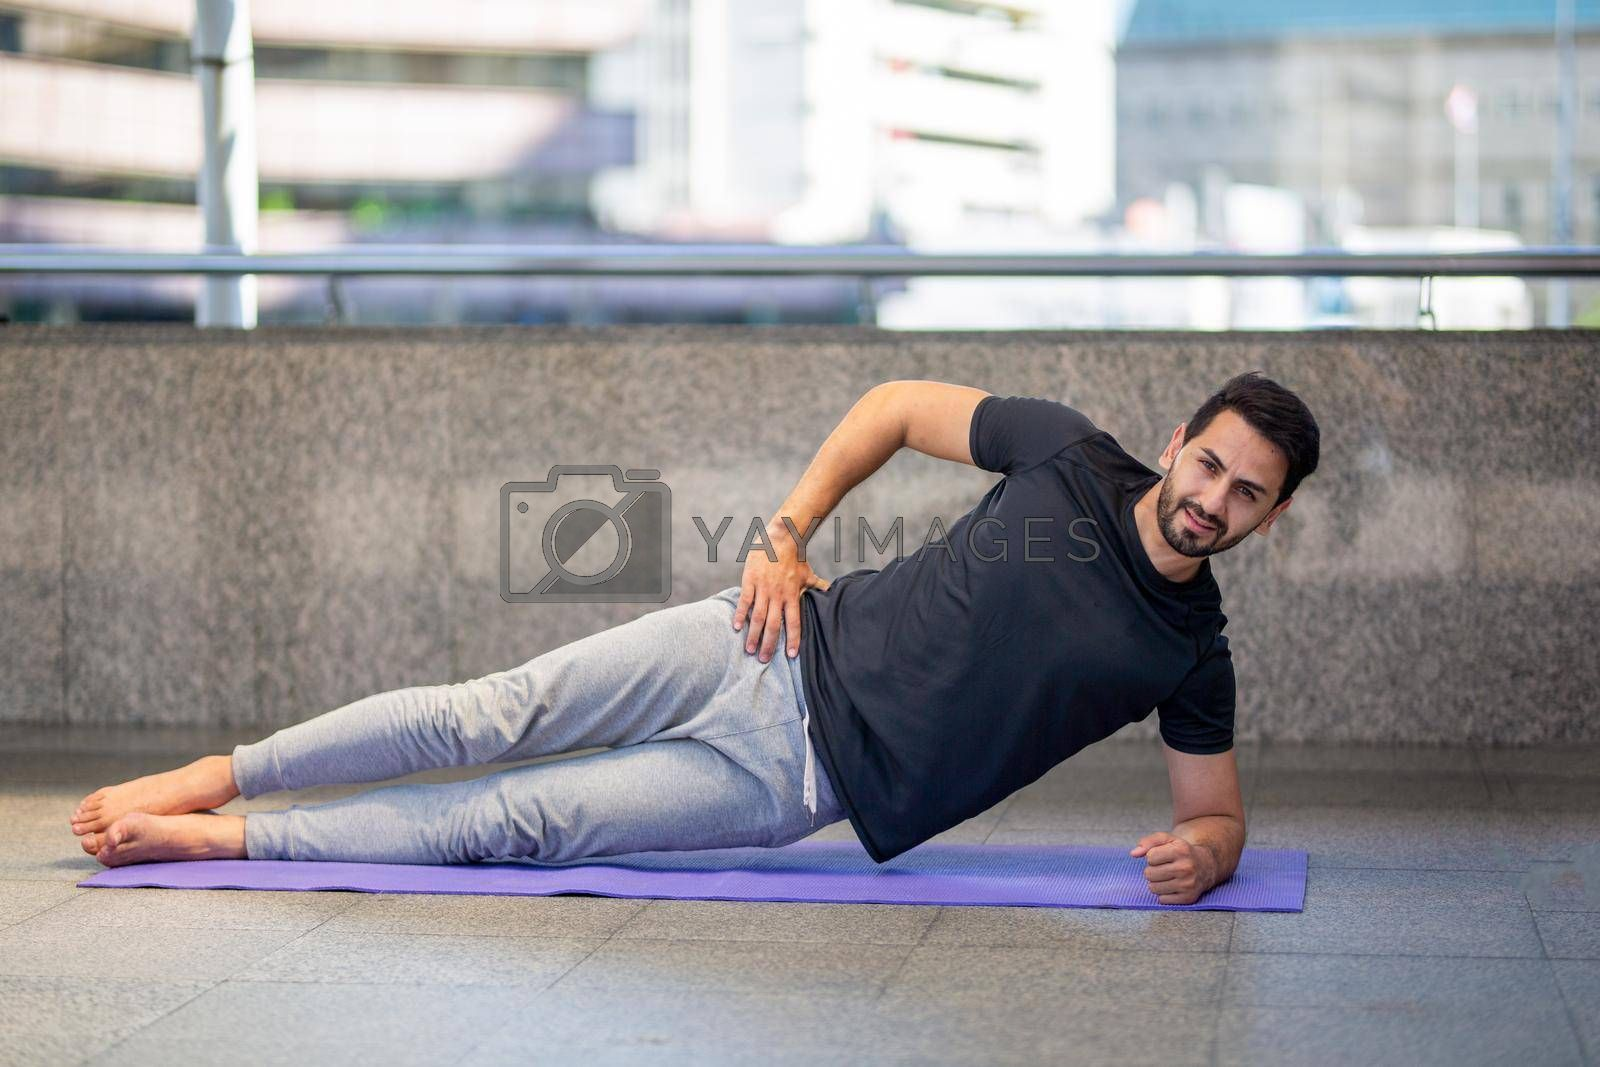 Young attractive smiling man practicing yoga pose, working out, wearing sportswear pants, full length, outdoor.